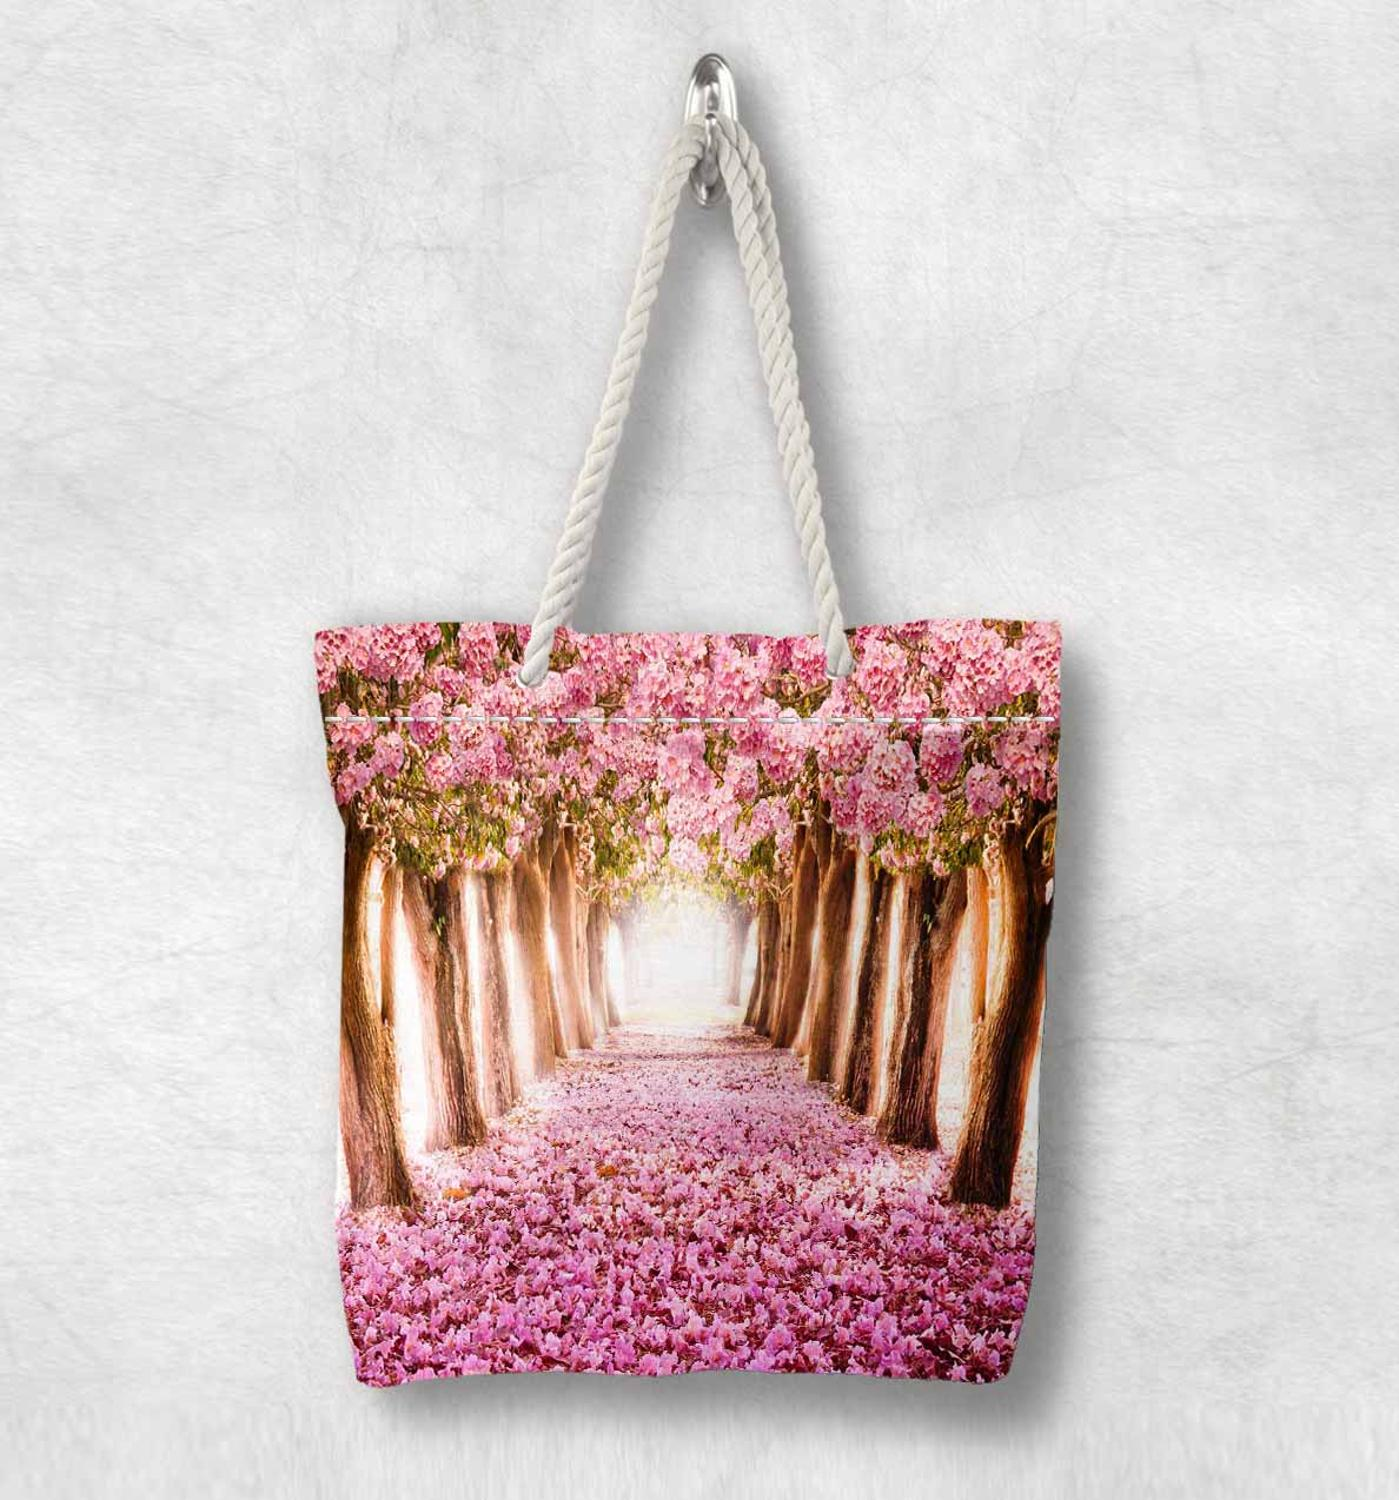 Else Pink Trees Leaves Floral Love Way New Fashion White Rope Handle Canvas Bag Cotton Canvas Zippered Tote Bag Shoulder Bag